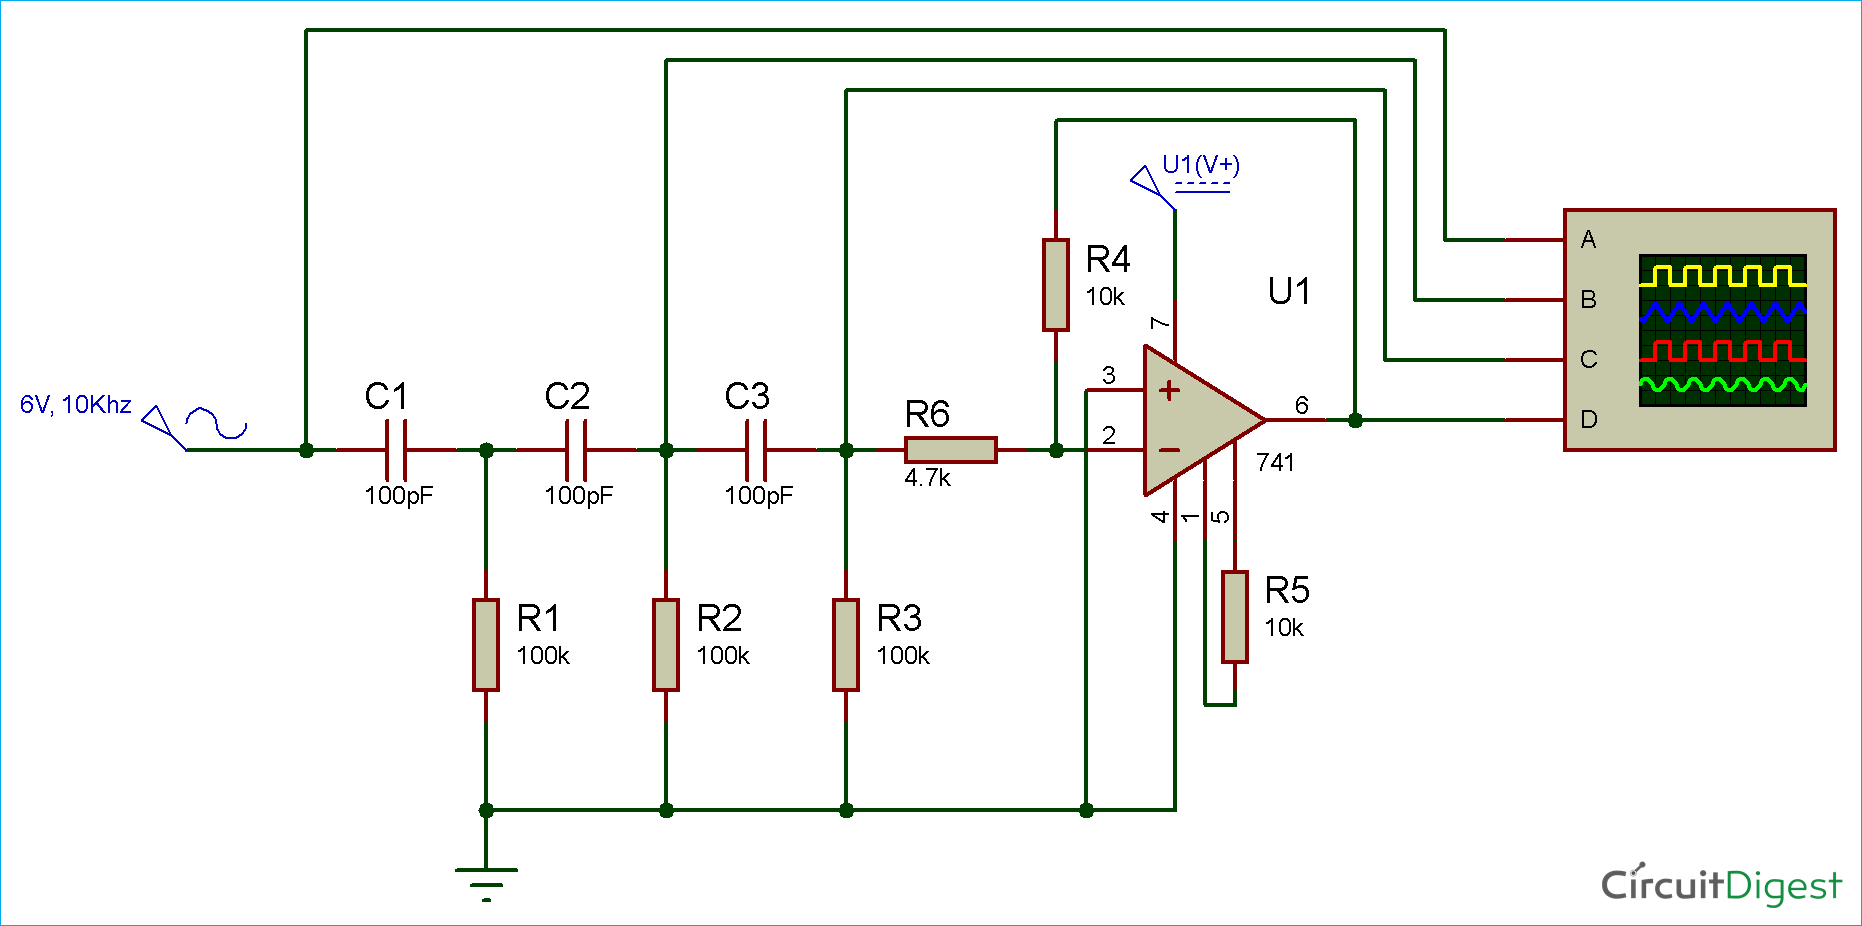 hight resolution of long interval rc timer using opamp simple circuit diagram diagram